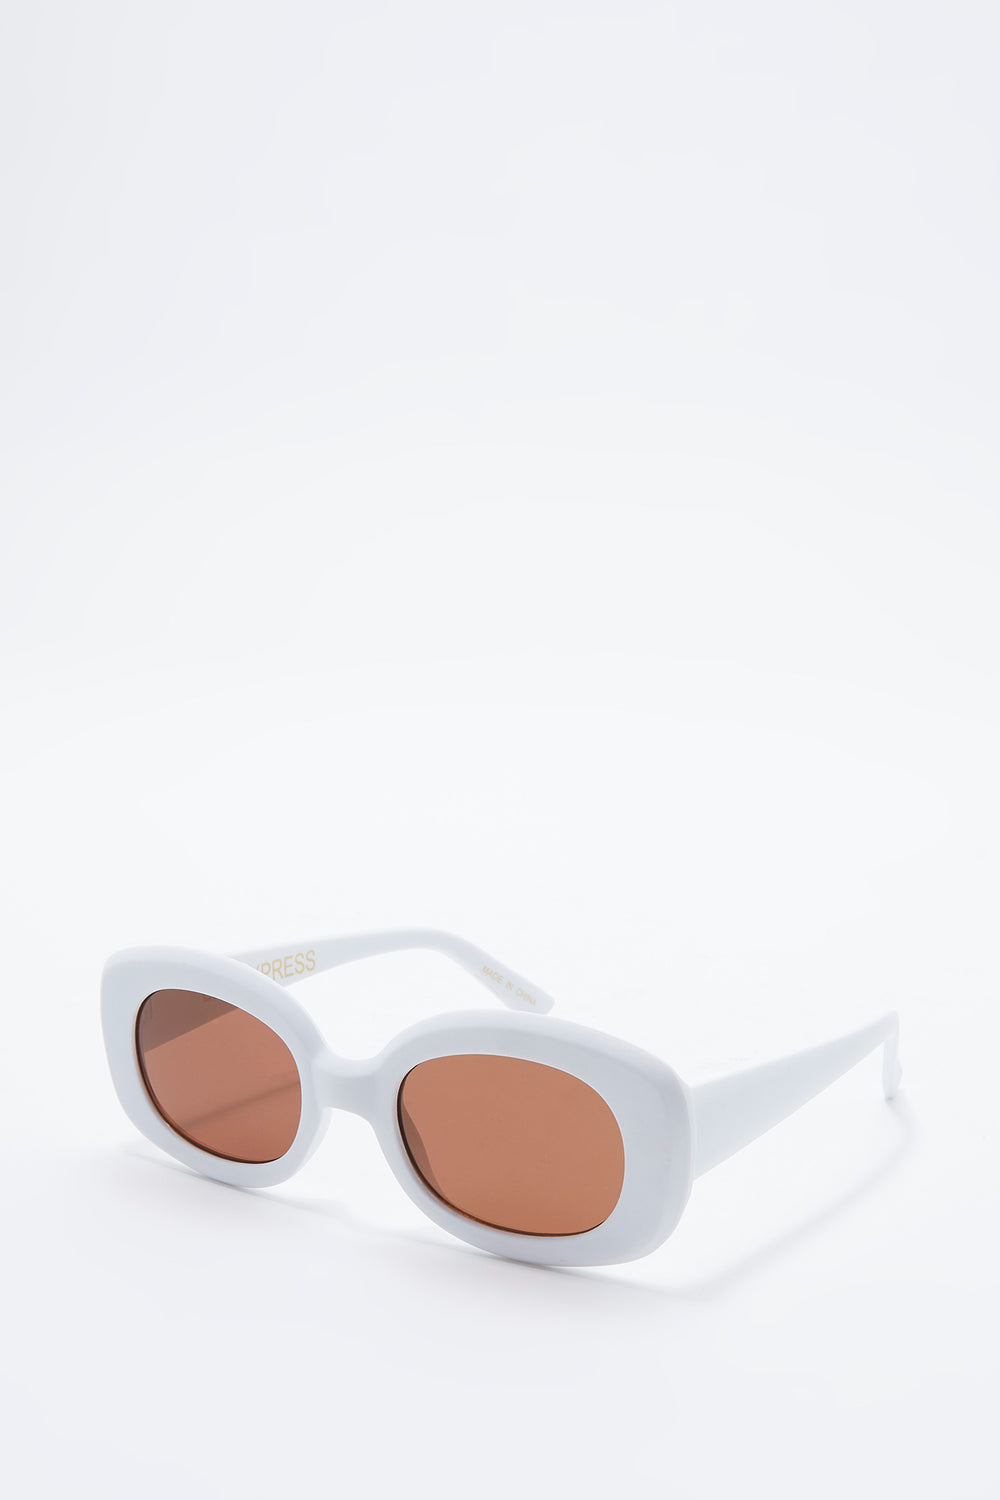 Matte Oval Frame Sunglasses White